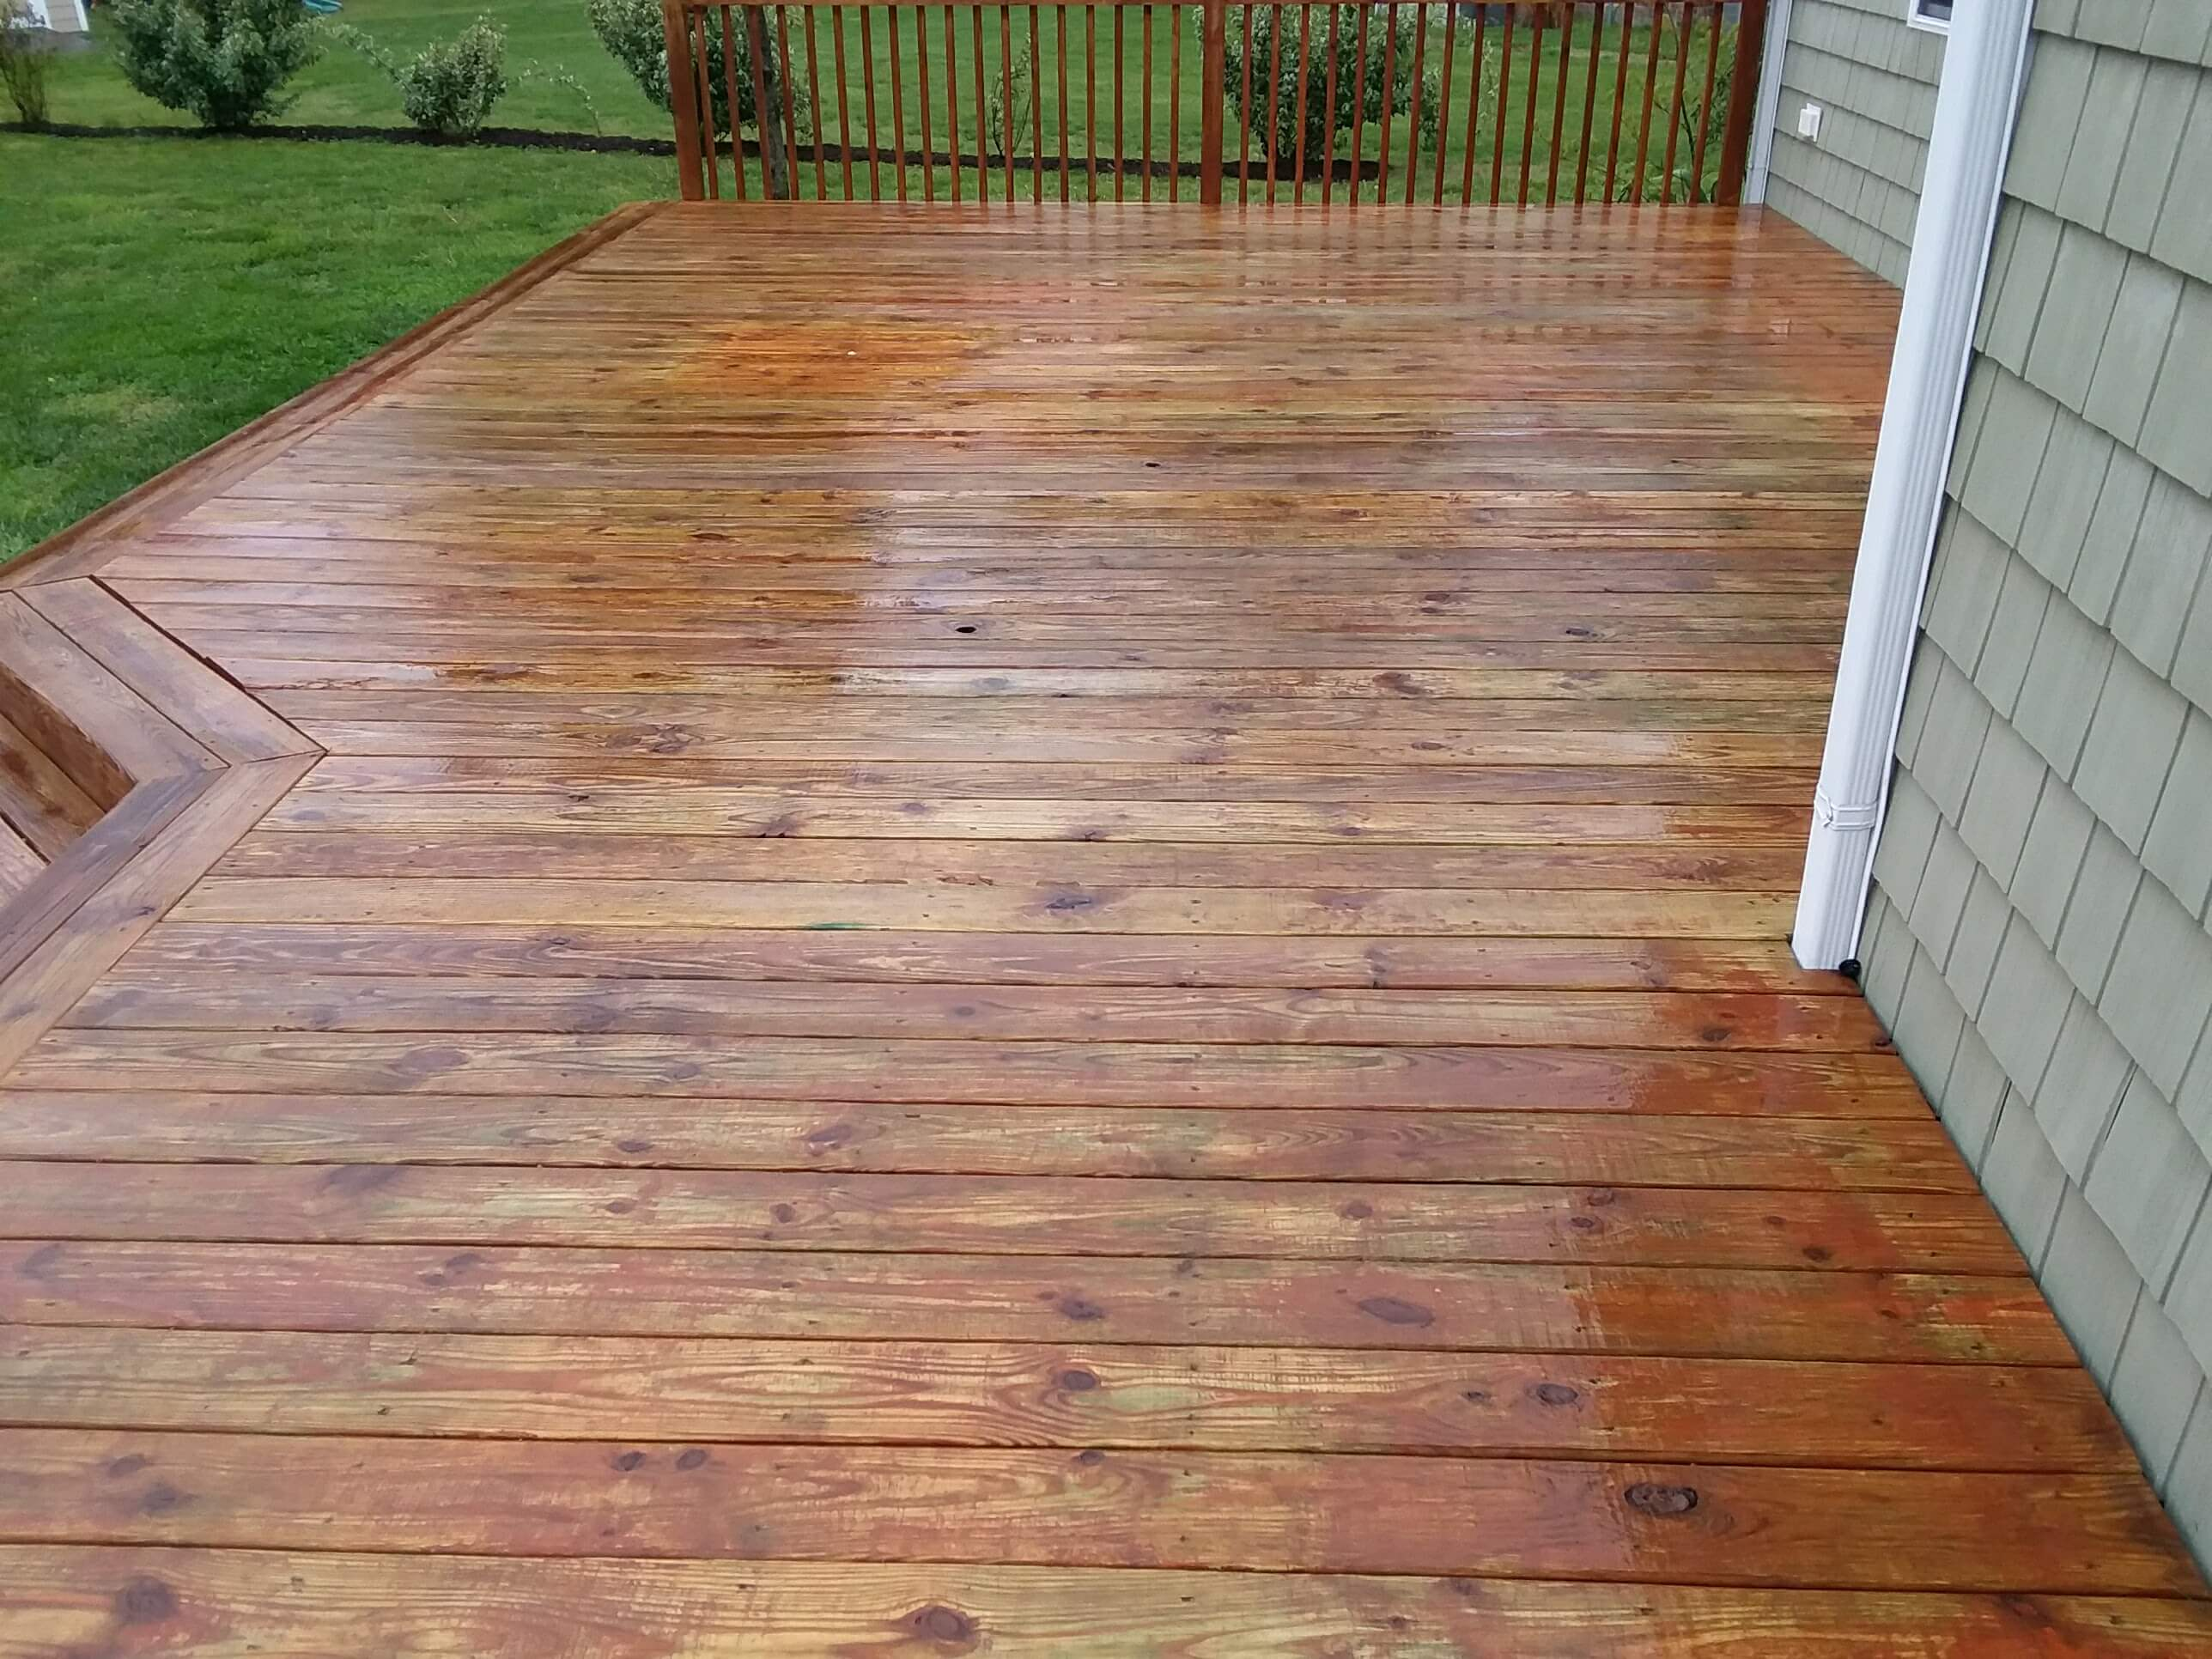 Carolina Pro Clean pressure washed deck 4